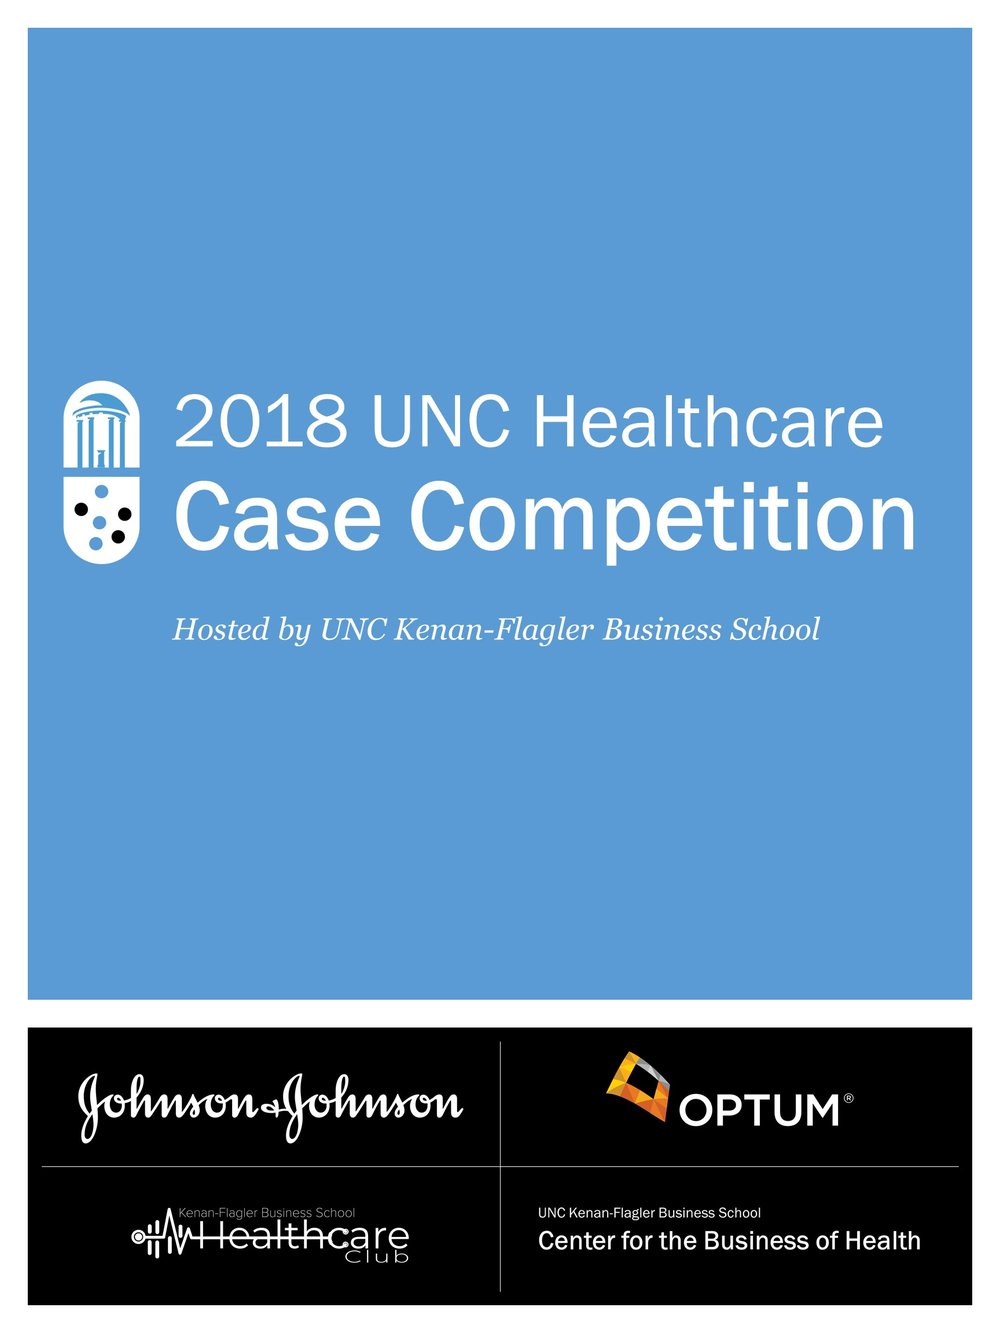 UNC Healthcare Case Competition_Poster 1_101518.jpg